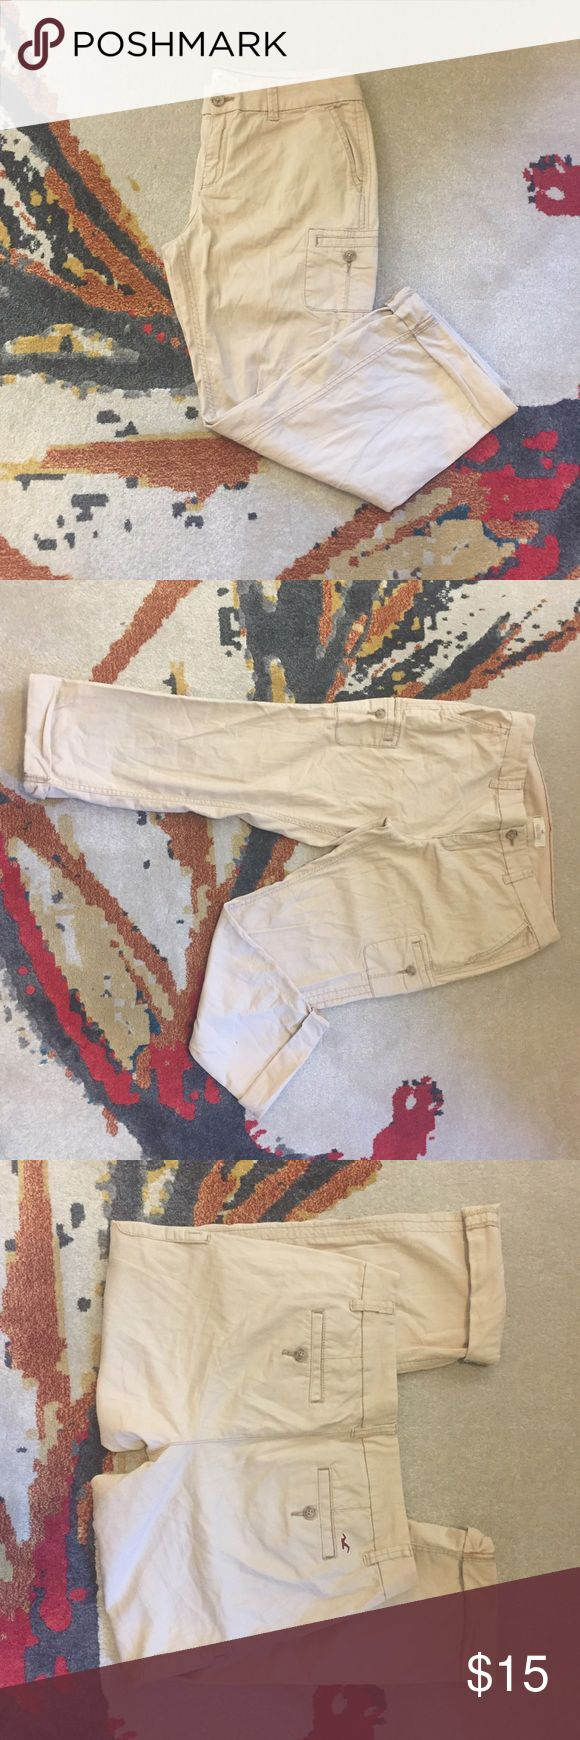 Hollister Khaki Capris Rugged and edgy look - Hollister khaki capris with cute pockets - in great condition. Hollister Pants Capris